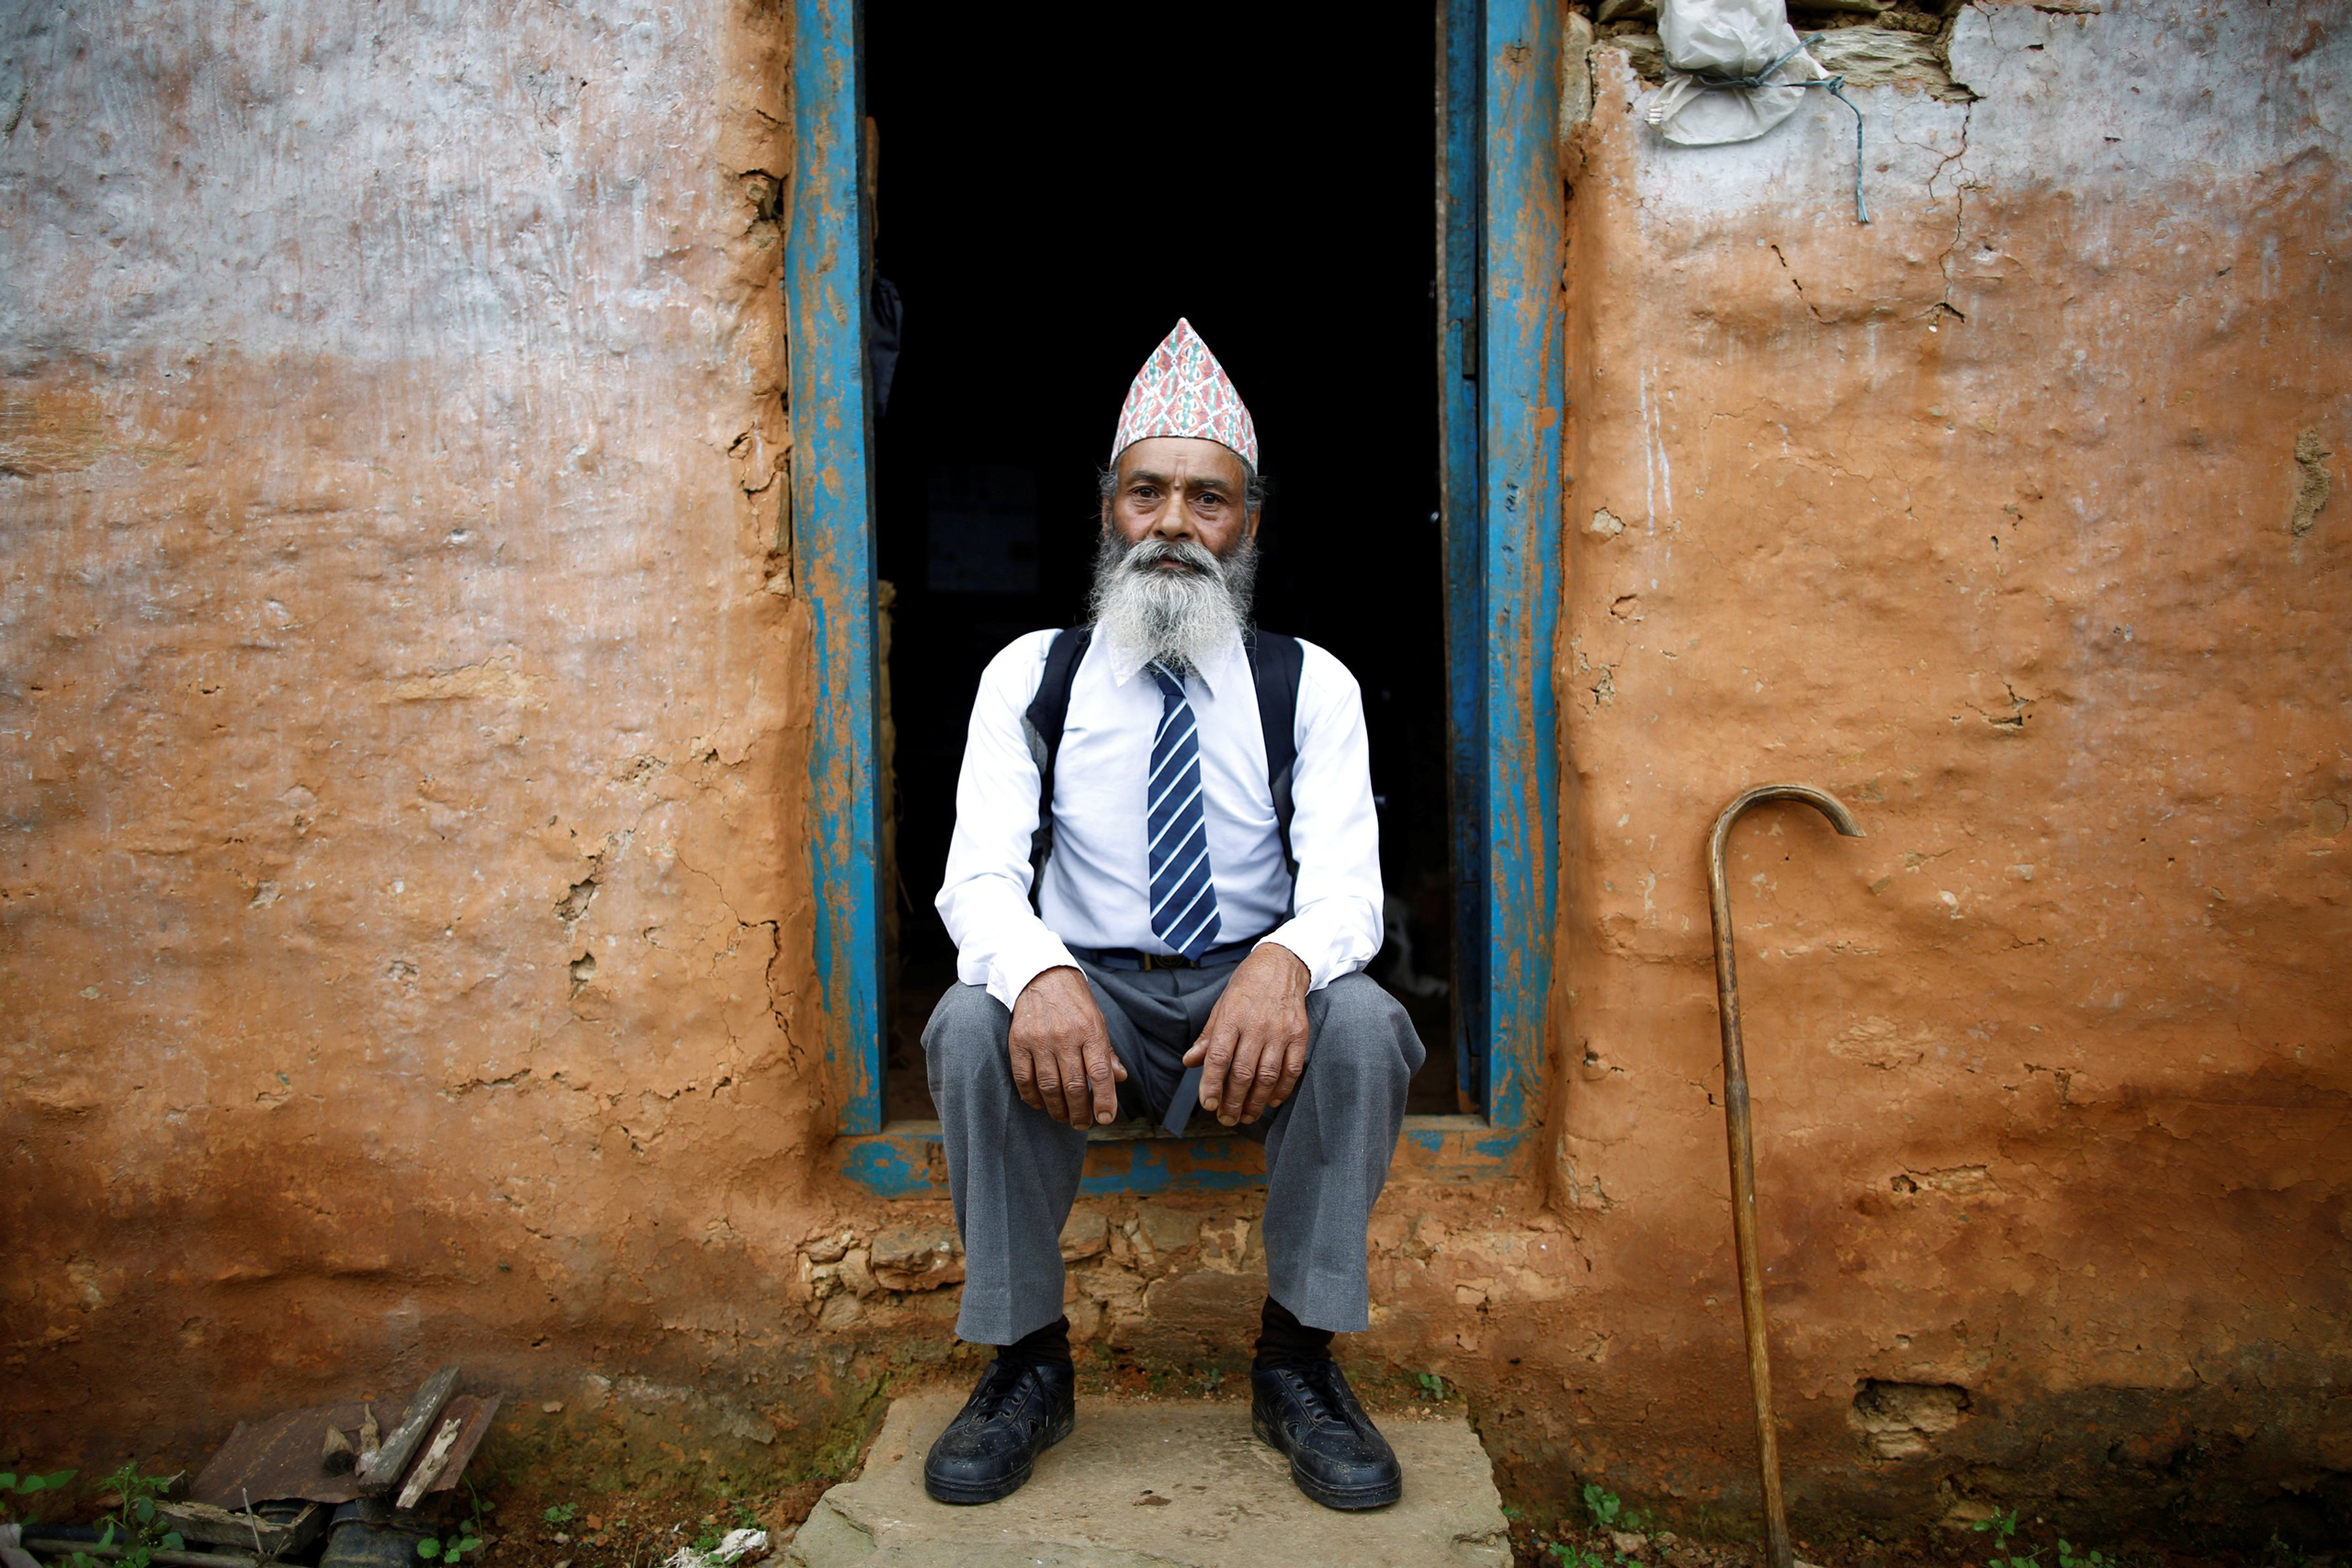 Durga Kami, 68, who is studying tenth grade at Shree Kala Bhairab Higher Secondary School, poses for a picture wearing his school uniform at his house in Syangja, Nepal, June 5, 2016.